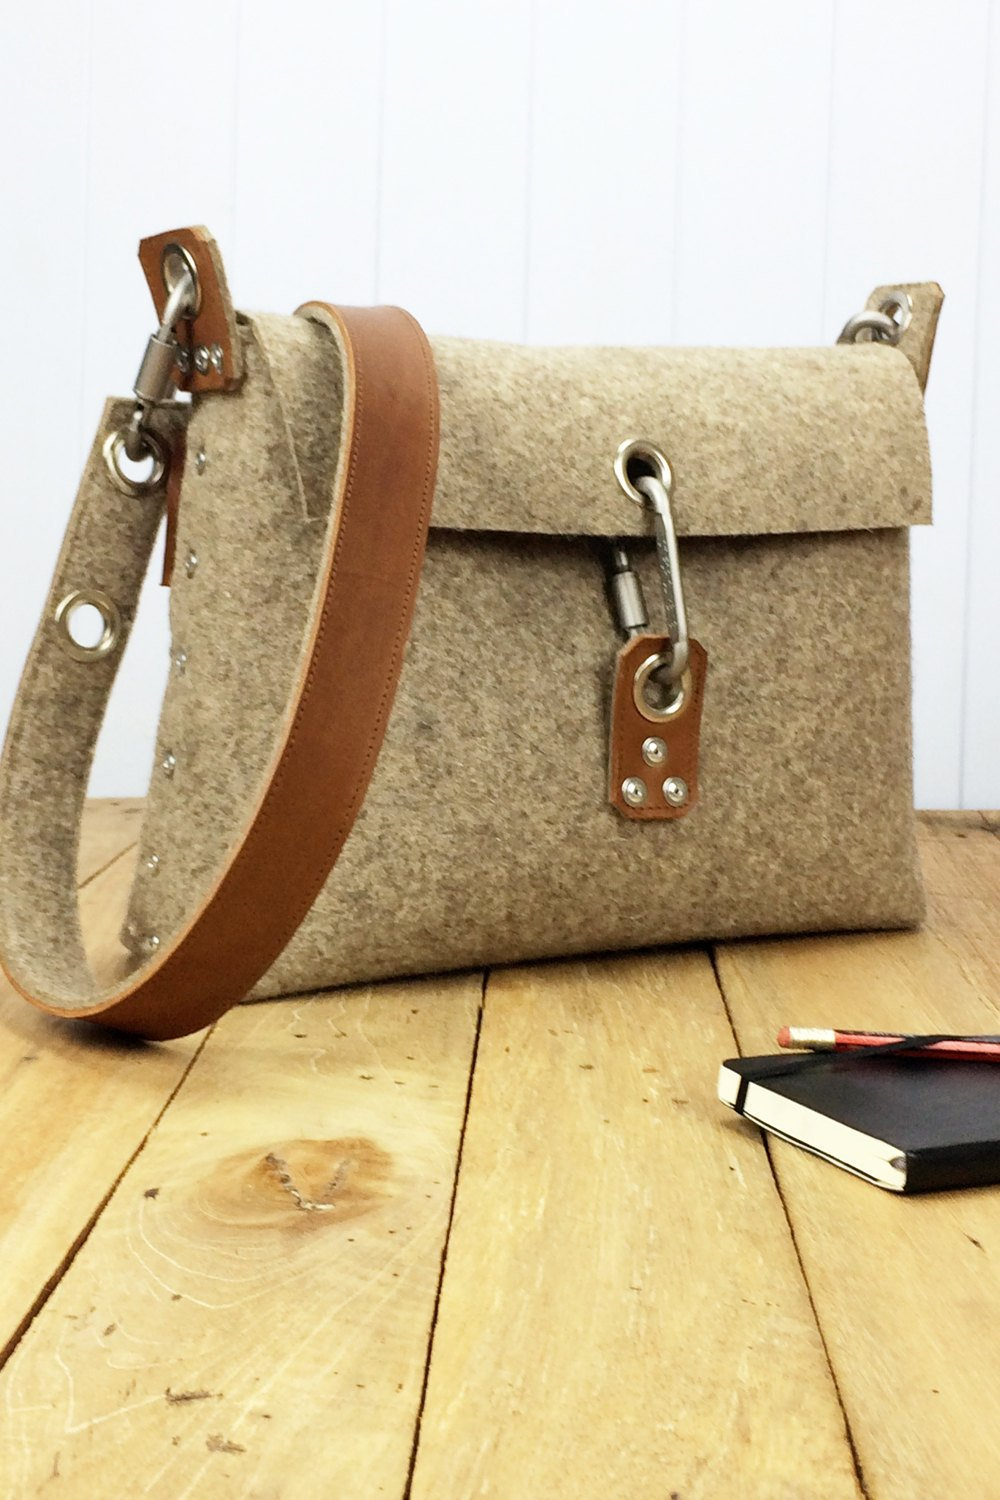 Womans felt handbag, felt purse for women, messenger bag for her, gift for her, womans messenger bag, clutch bag, handbag